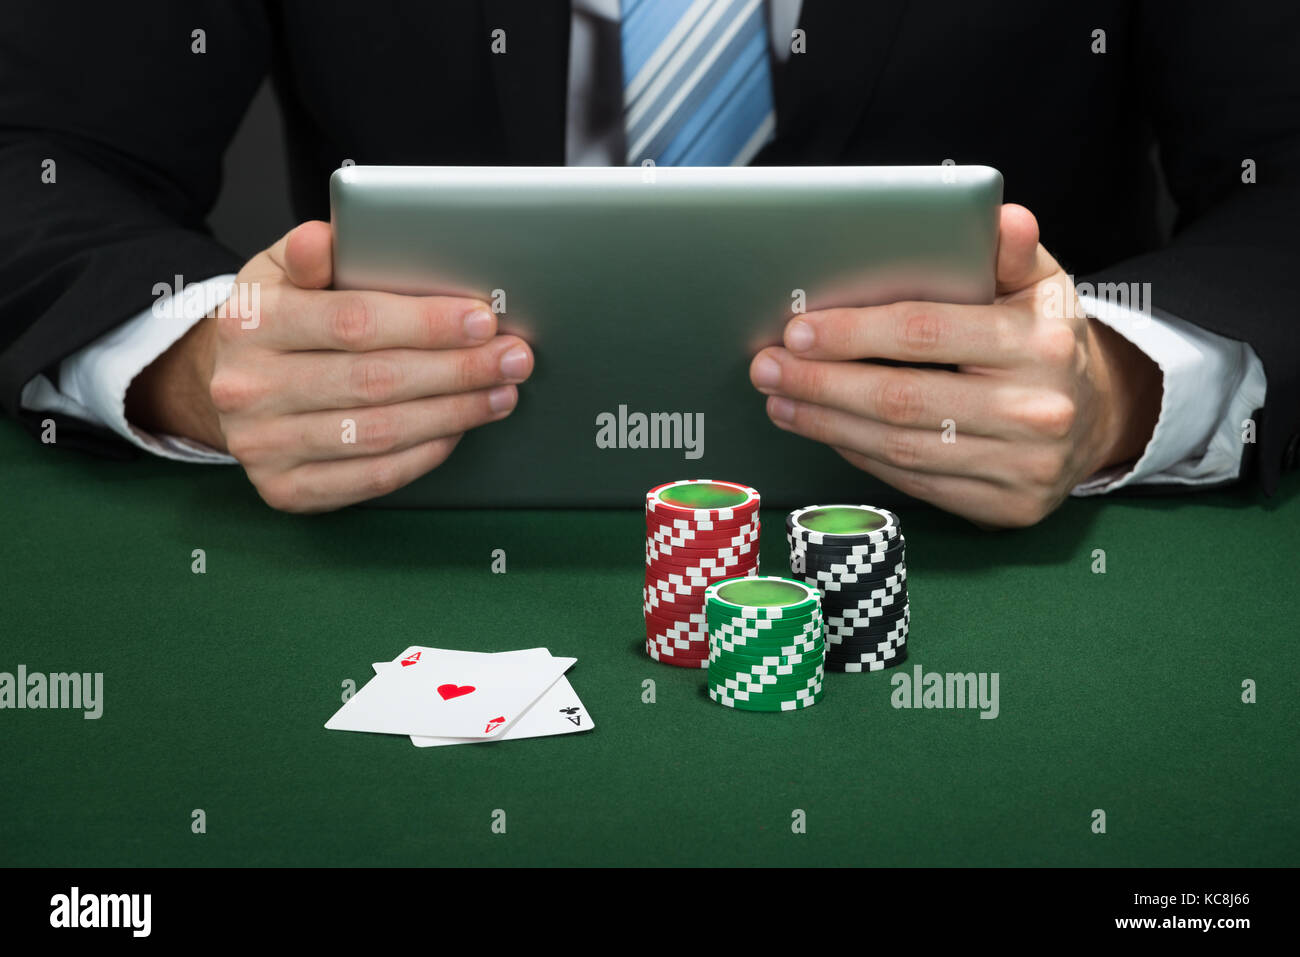 Surface rt poker